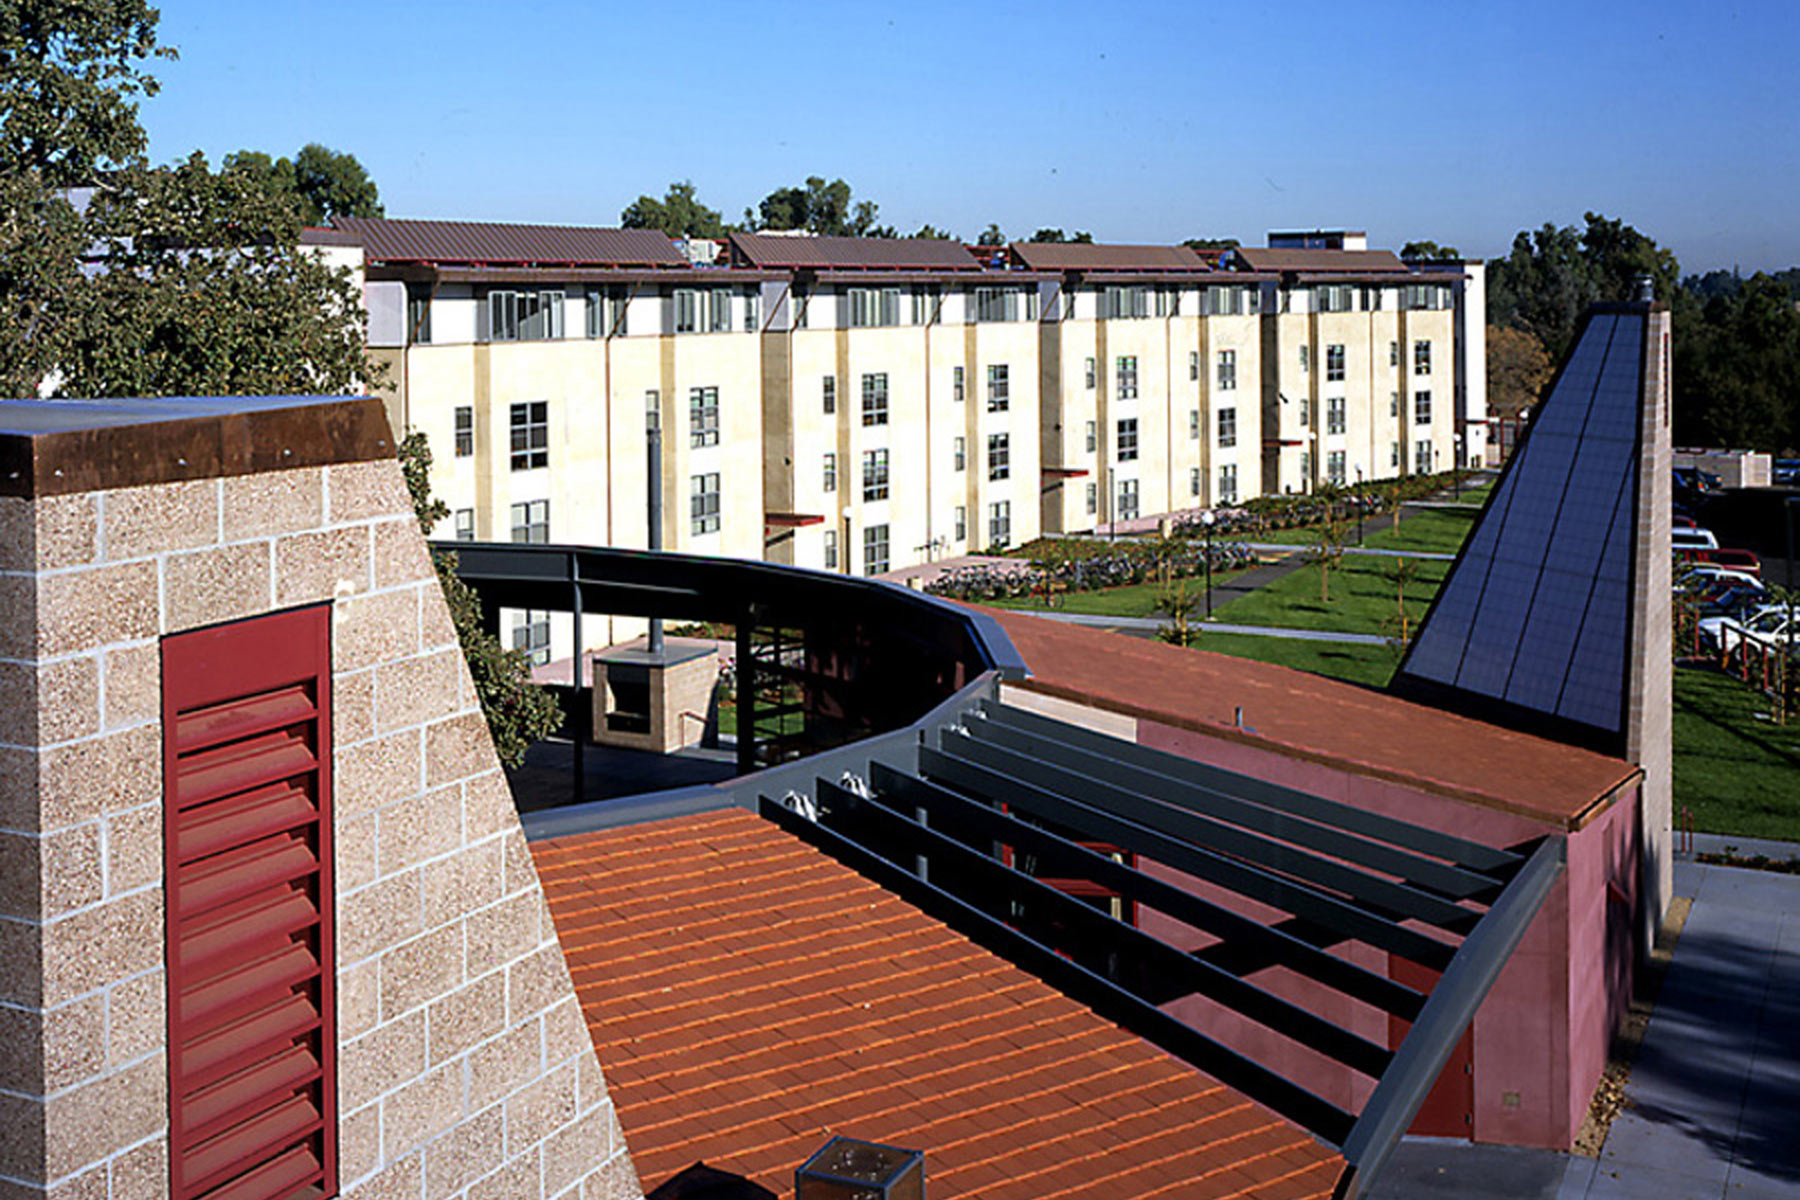 The Richard W. Lyman Graduate Residences at Stanford University in the Bay Area are shaped around the landscape to connect the students to the natural world.